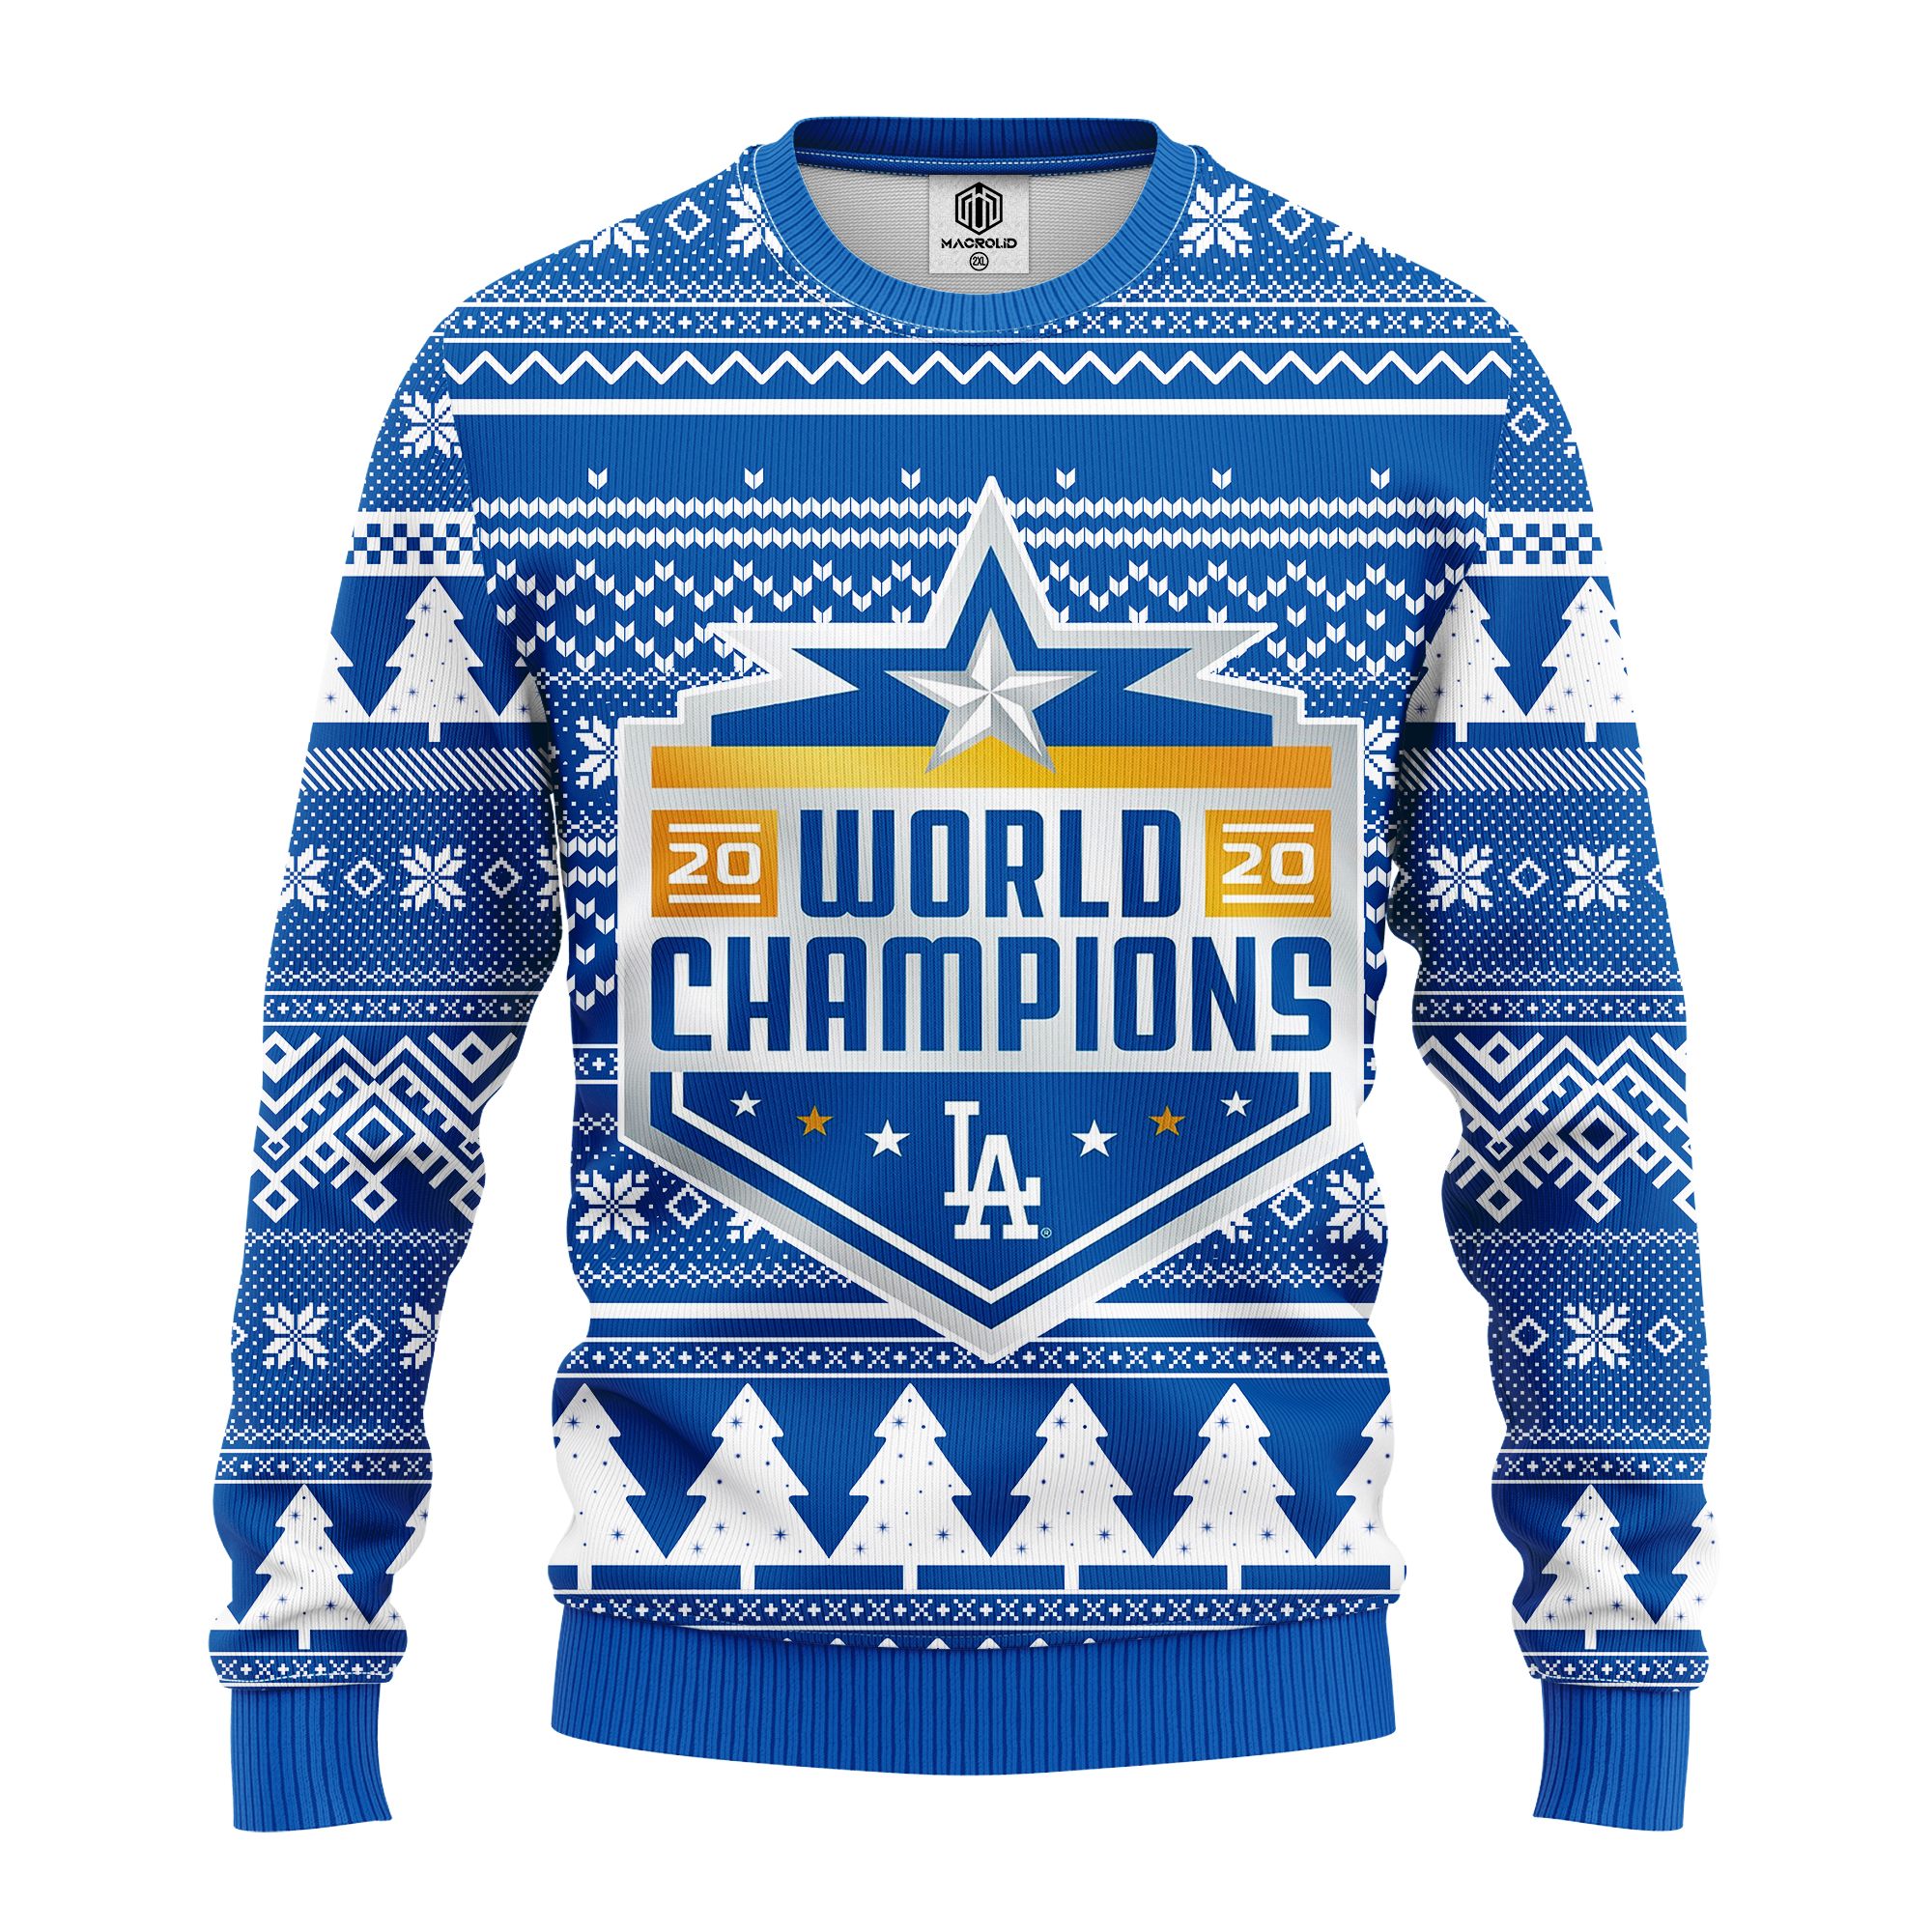 los angeles dodgers world champions ugly sweater 3